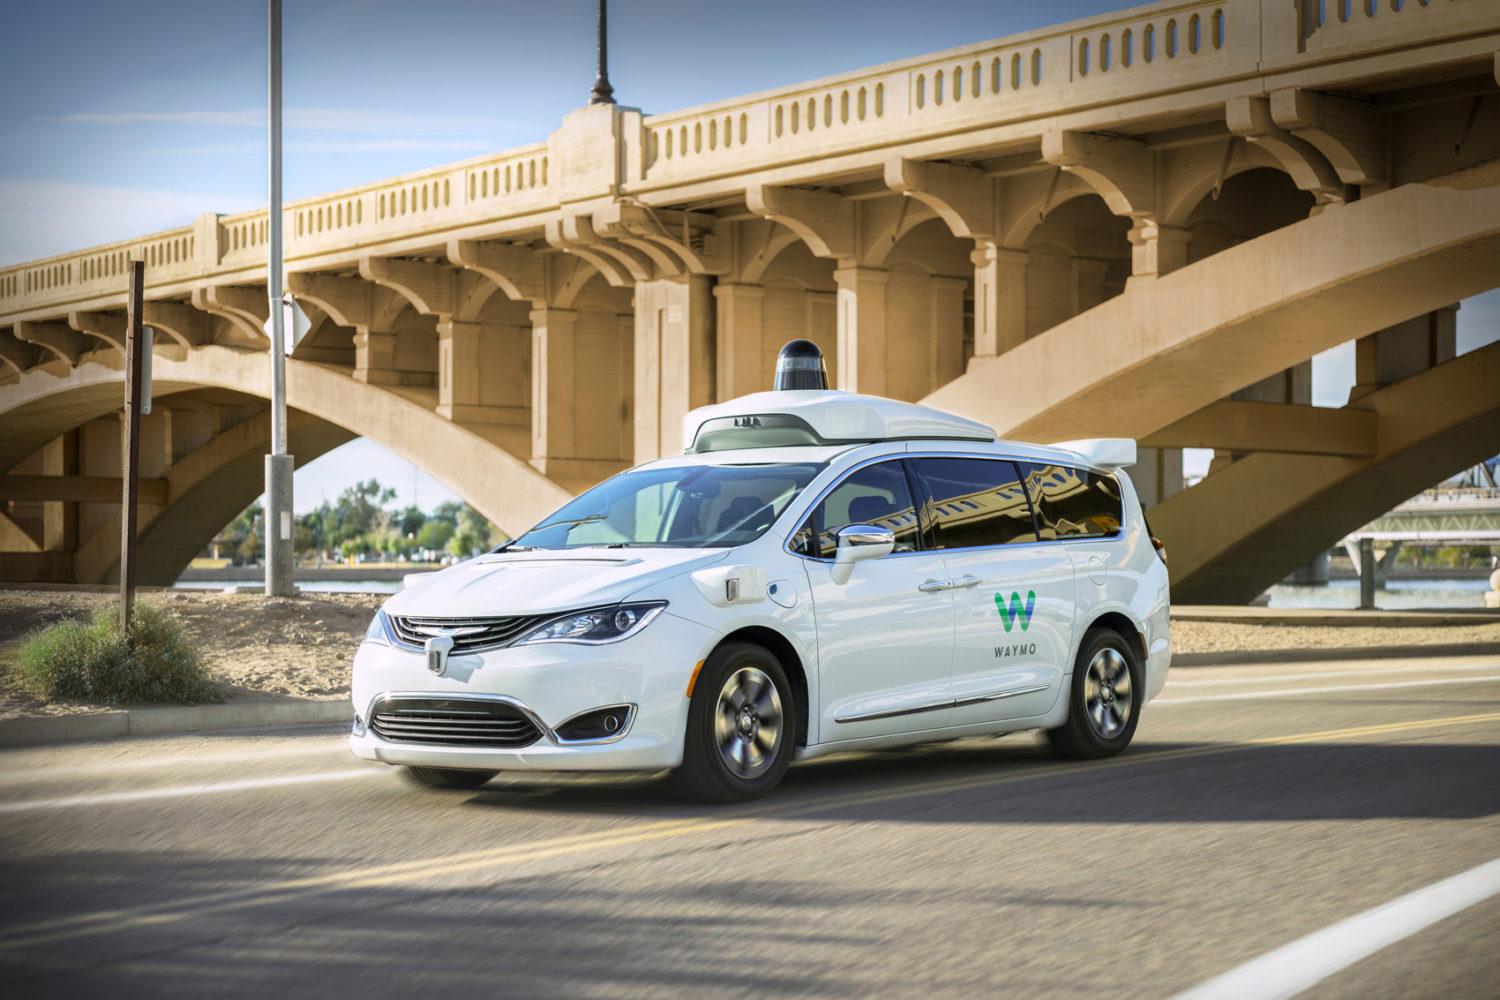 Uber, Lyft     And Now Waymo: The Self-Driving Car Service